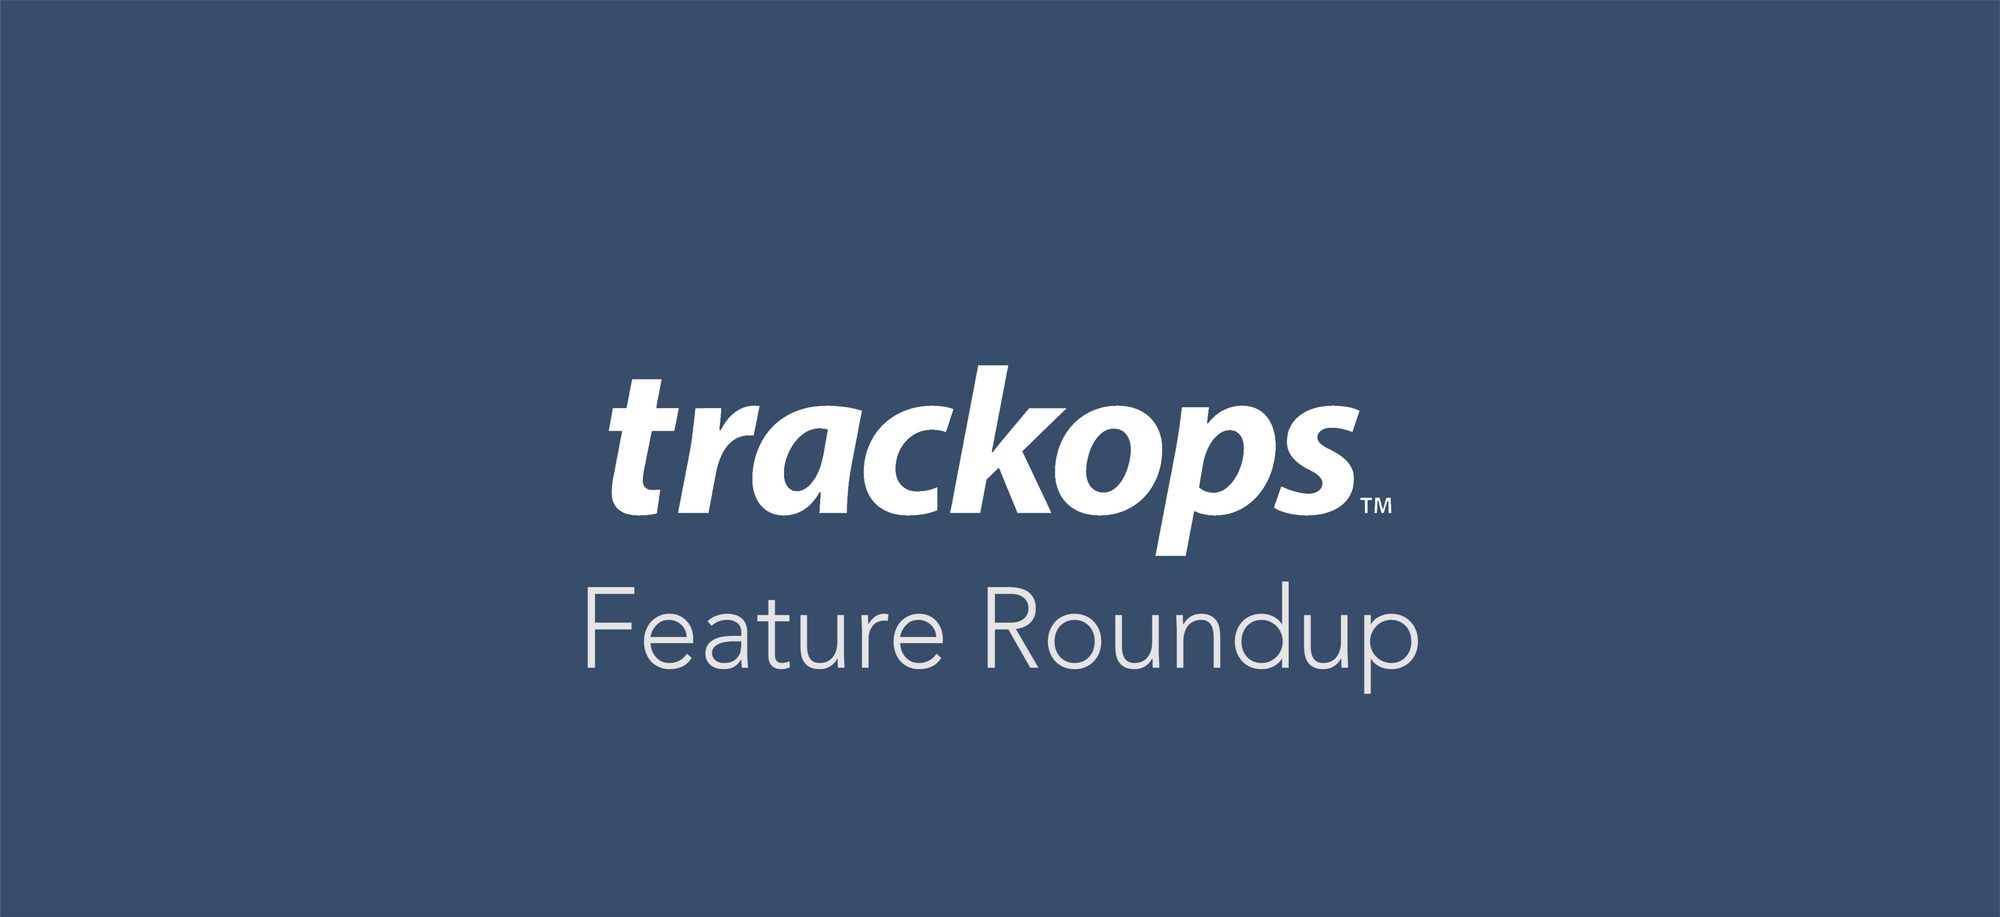 Trackops Feature Roundup May 2016